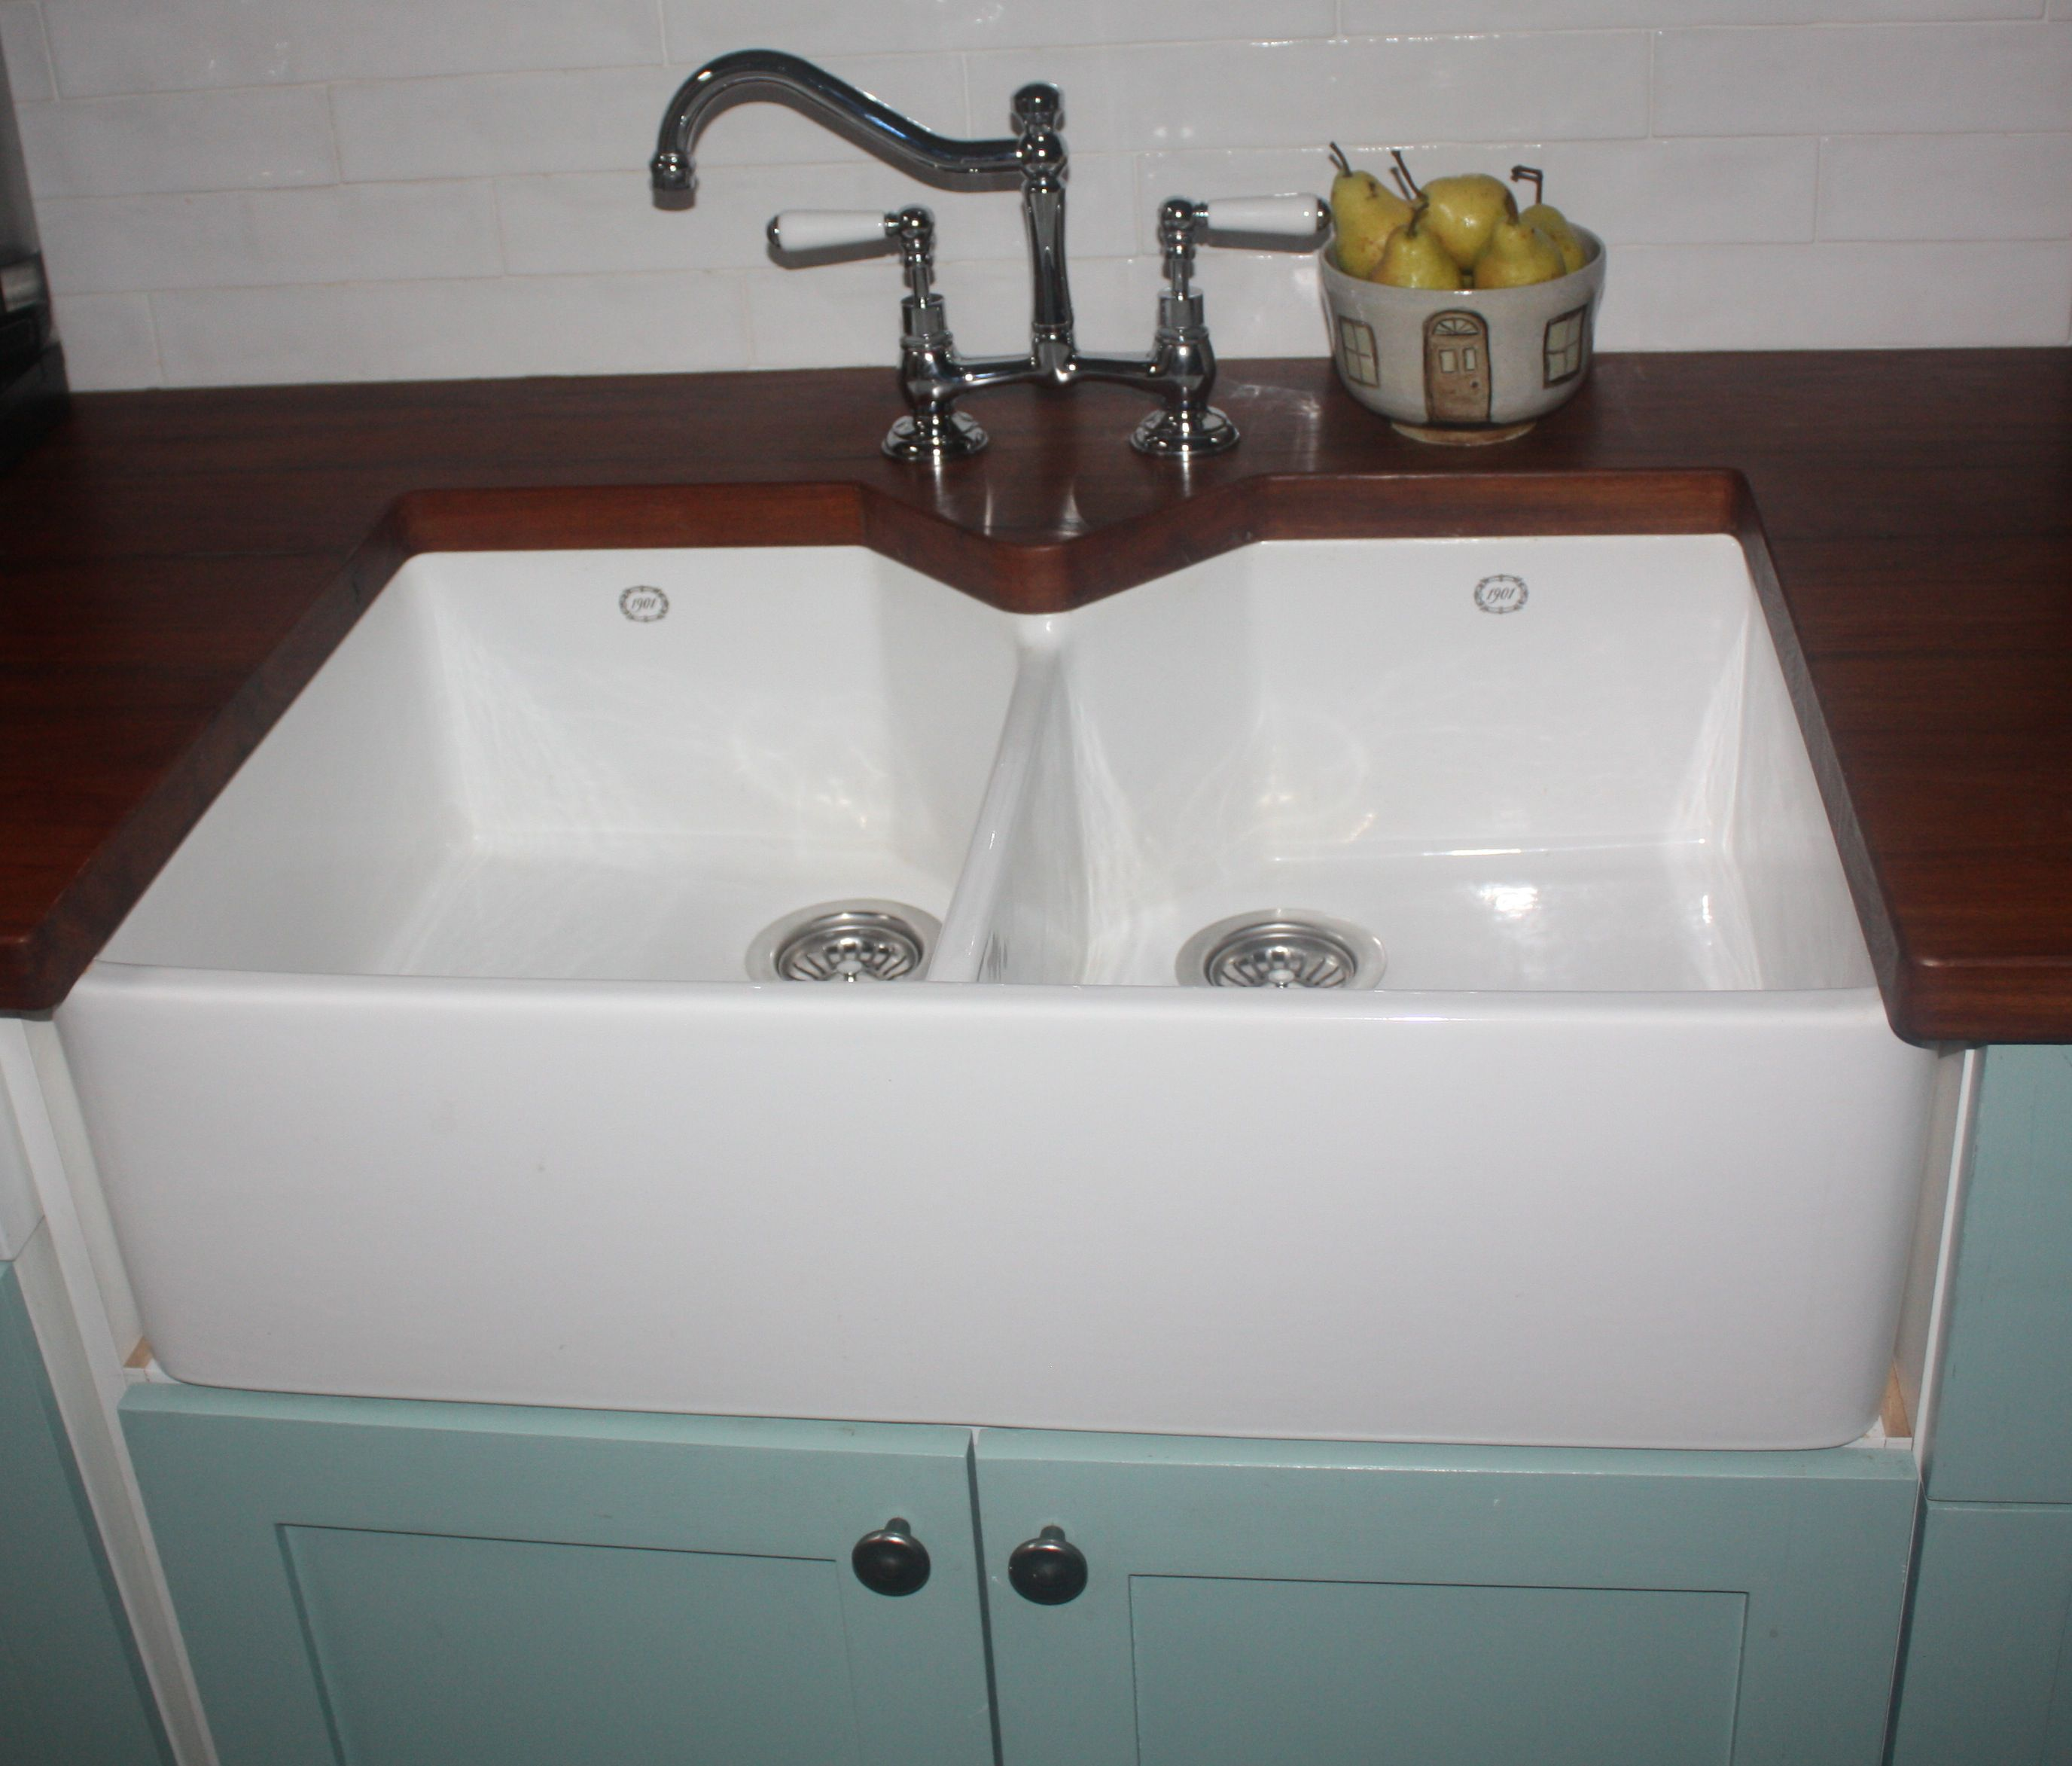 Country Kitchen Taps: Double Butler Sink With Wooden Bench Top. Http://www.restorationonline.com.au/sinks/kitchen